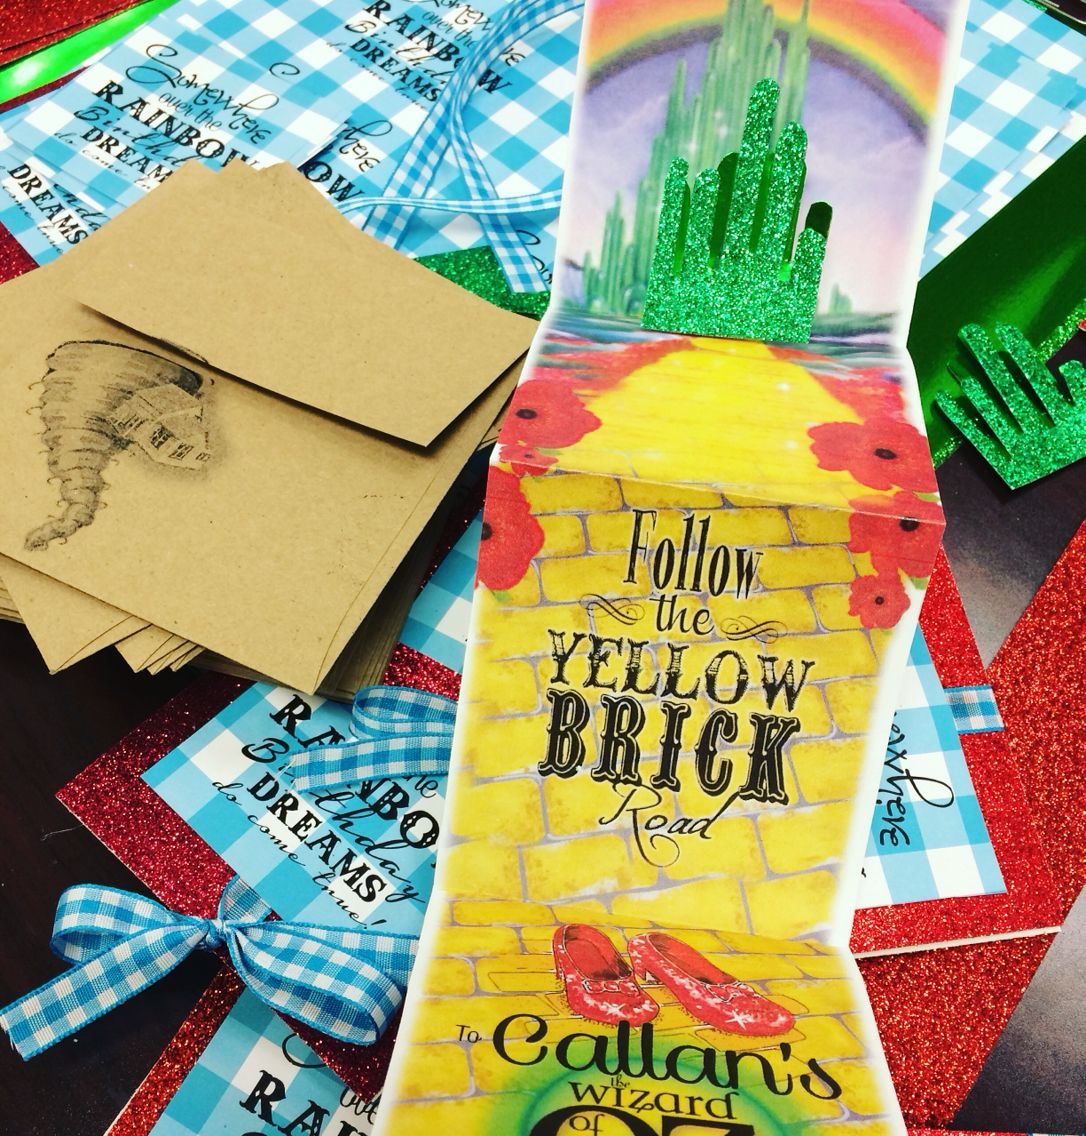 Wizard of oz birthday party invitations fold out yellow brick road wizard of oz birthday party invitations fold out yellow brick road bookmarktalkfo Image collections